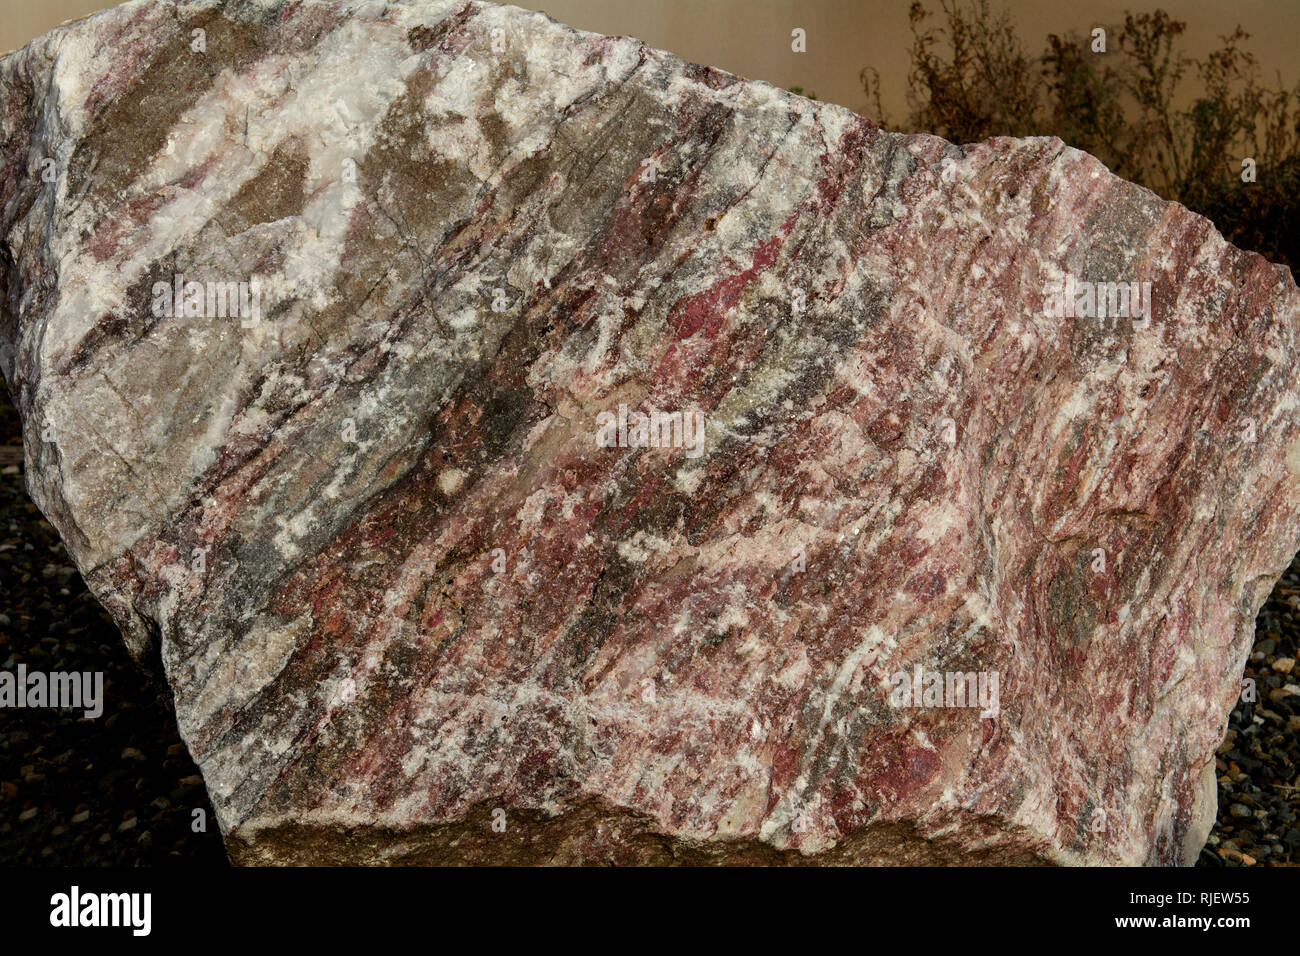 Marble is a metamorphic rock composed of recrystallized carbonate minerals, most commonly calcite or dolomite- geology - Stock Image